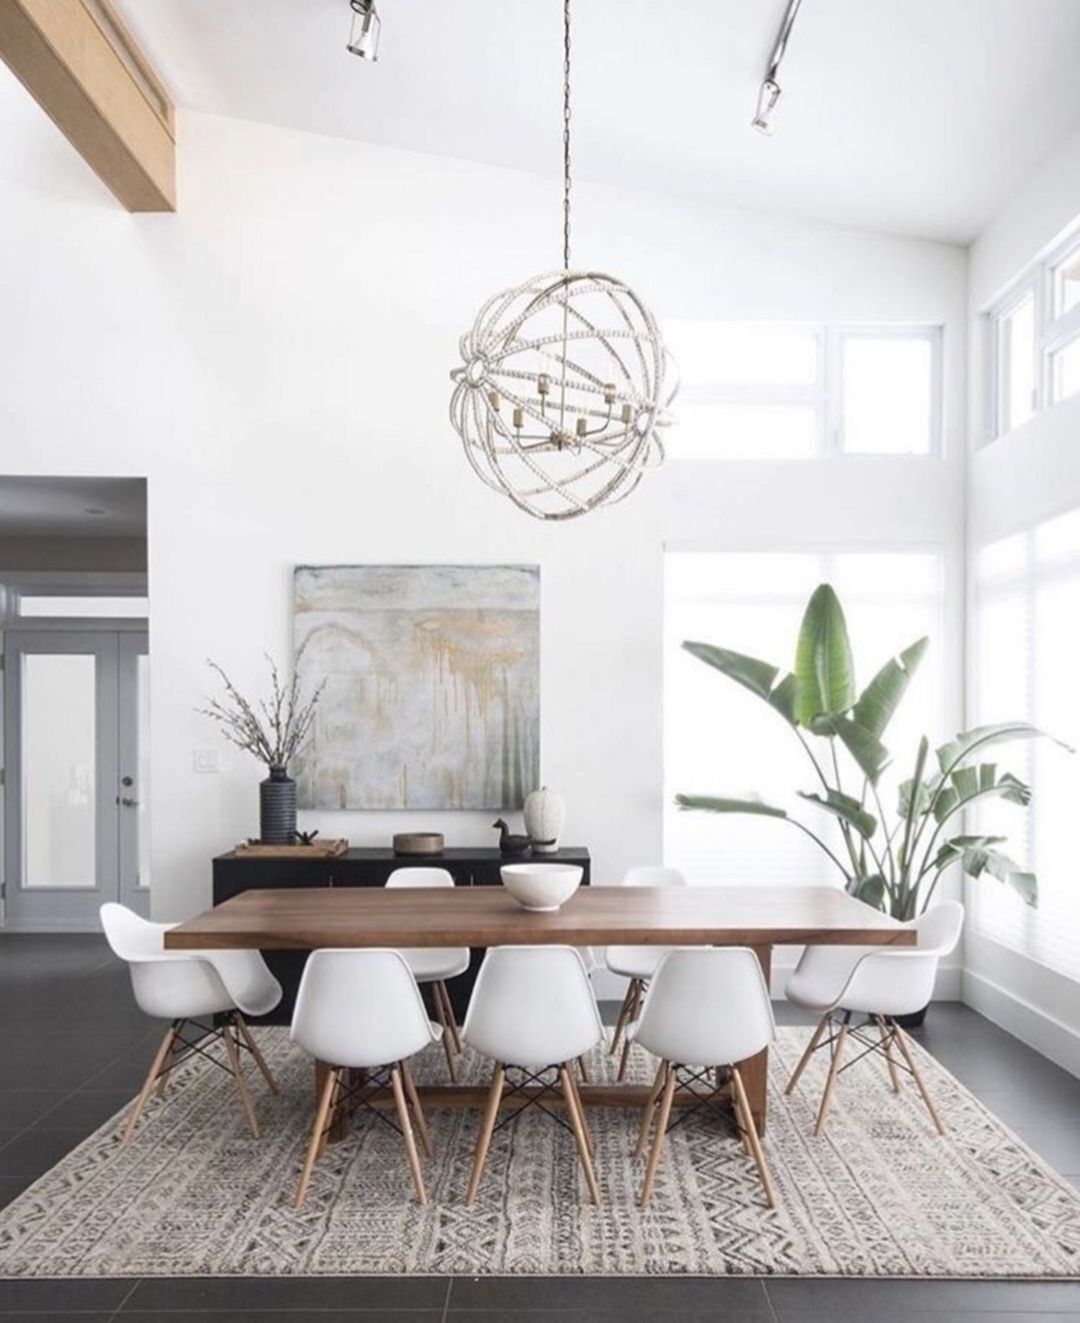 Gorgeous 30 Modern Minimalist Dining Room Design Ideas For Comfortable Dinner With Your Family Dining Room Small Family Dining Rooms Minimalist Dining Room